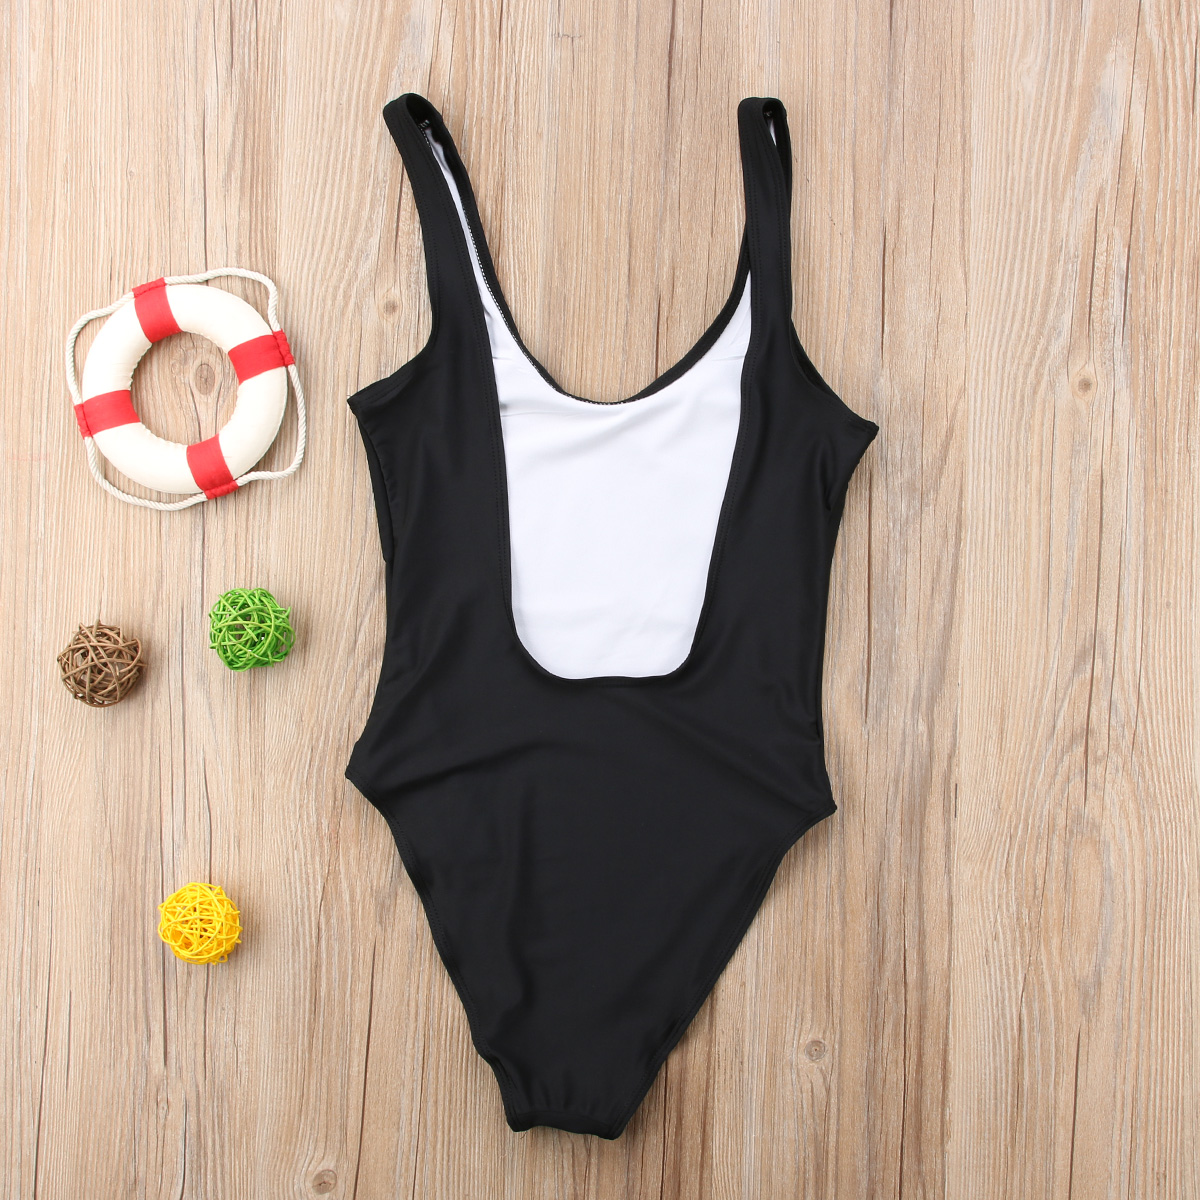 af71d482c6 2018 Family Matching Womens Mom Kids Baby Girls Bikini Bathing Suit  Sleeveless Bodysuit Swimwear Letters Cute Swimsuit-in Matching Family  Outfits from ...